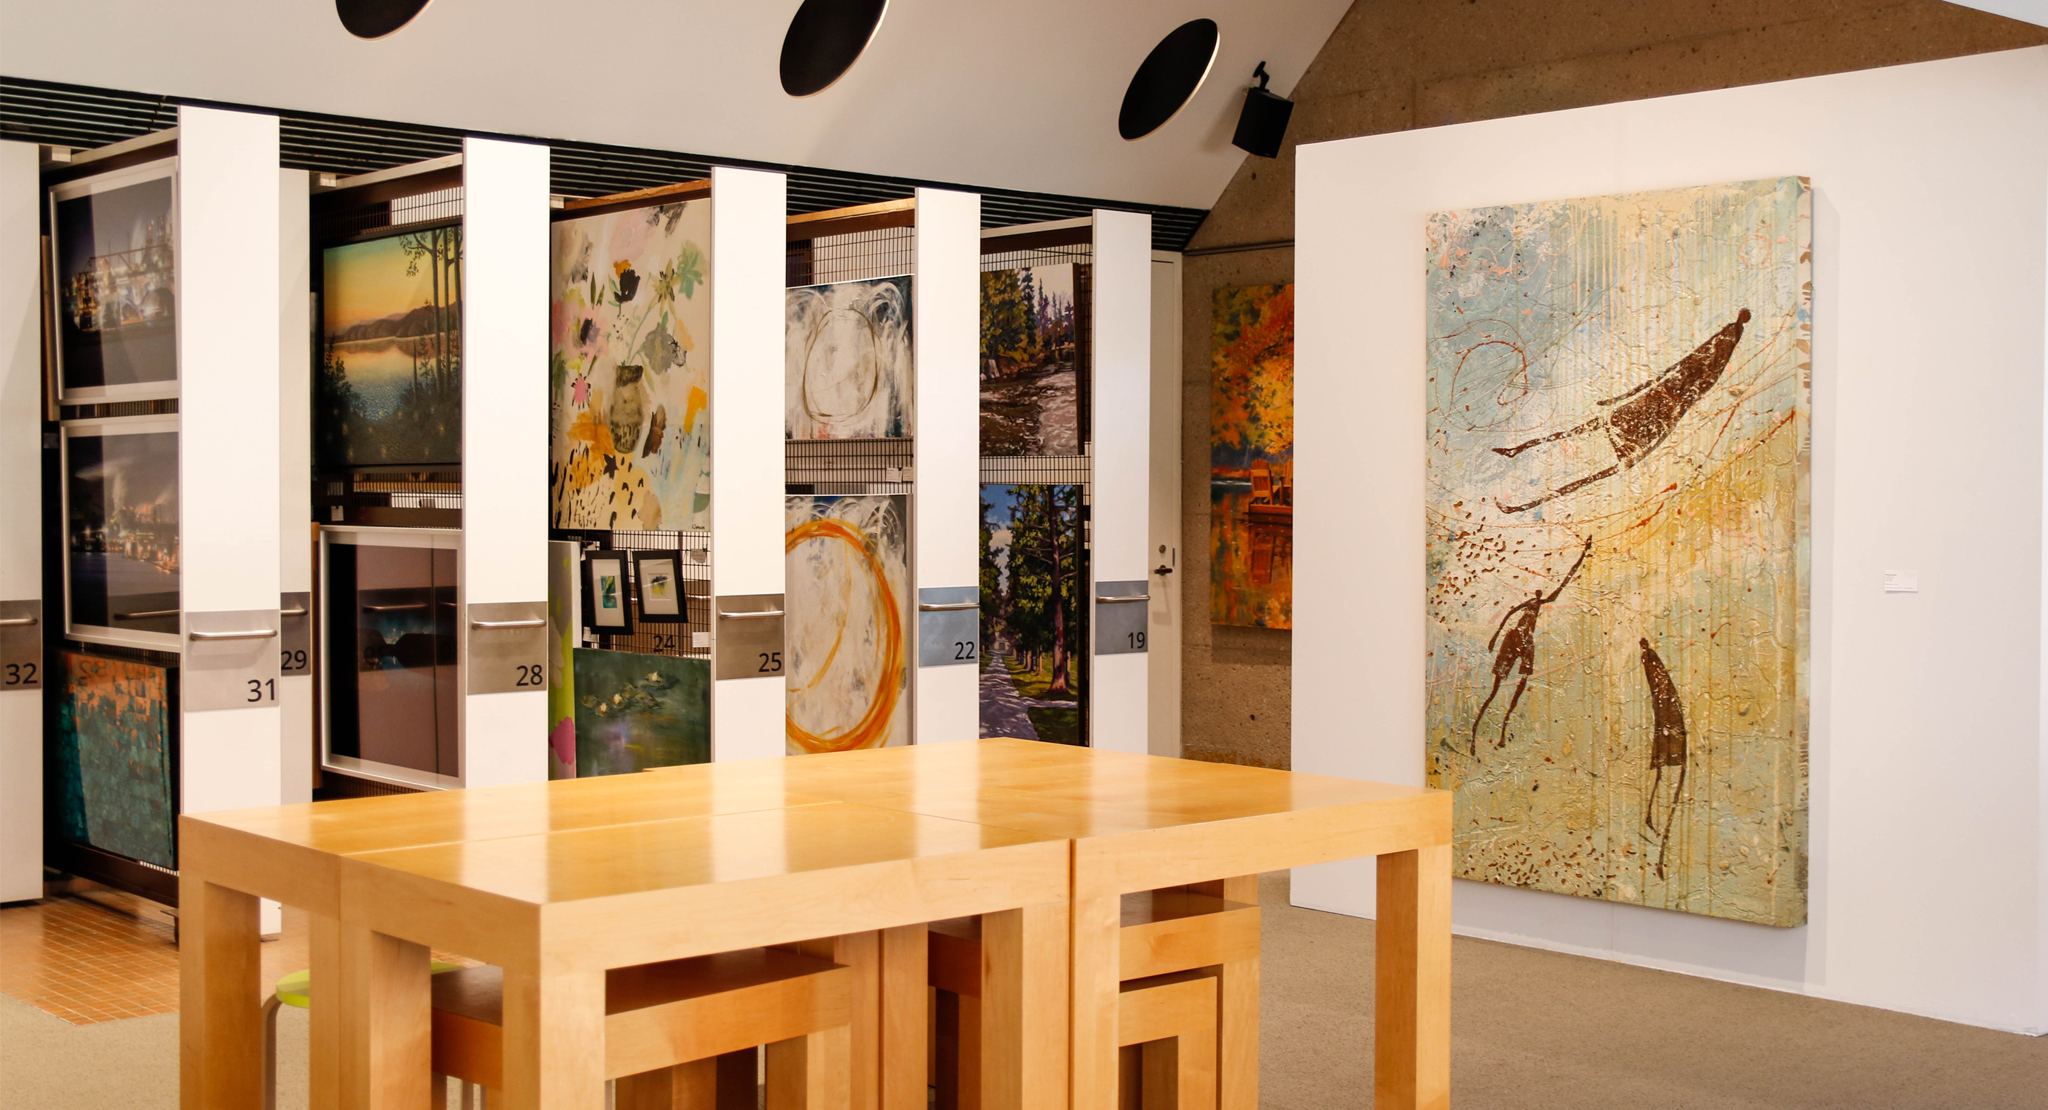 On Collecting Art: The Creation and Value of a Personal Art Collection